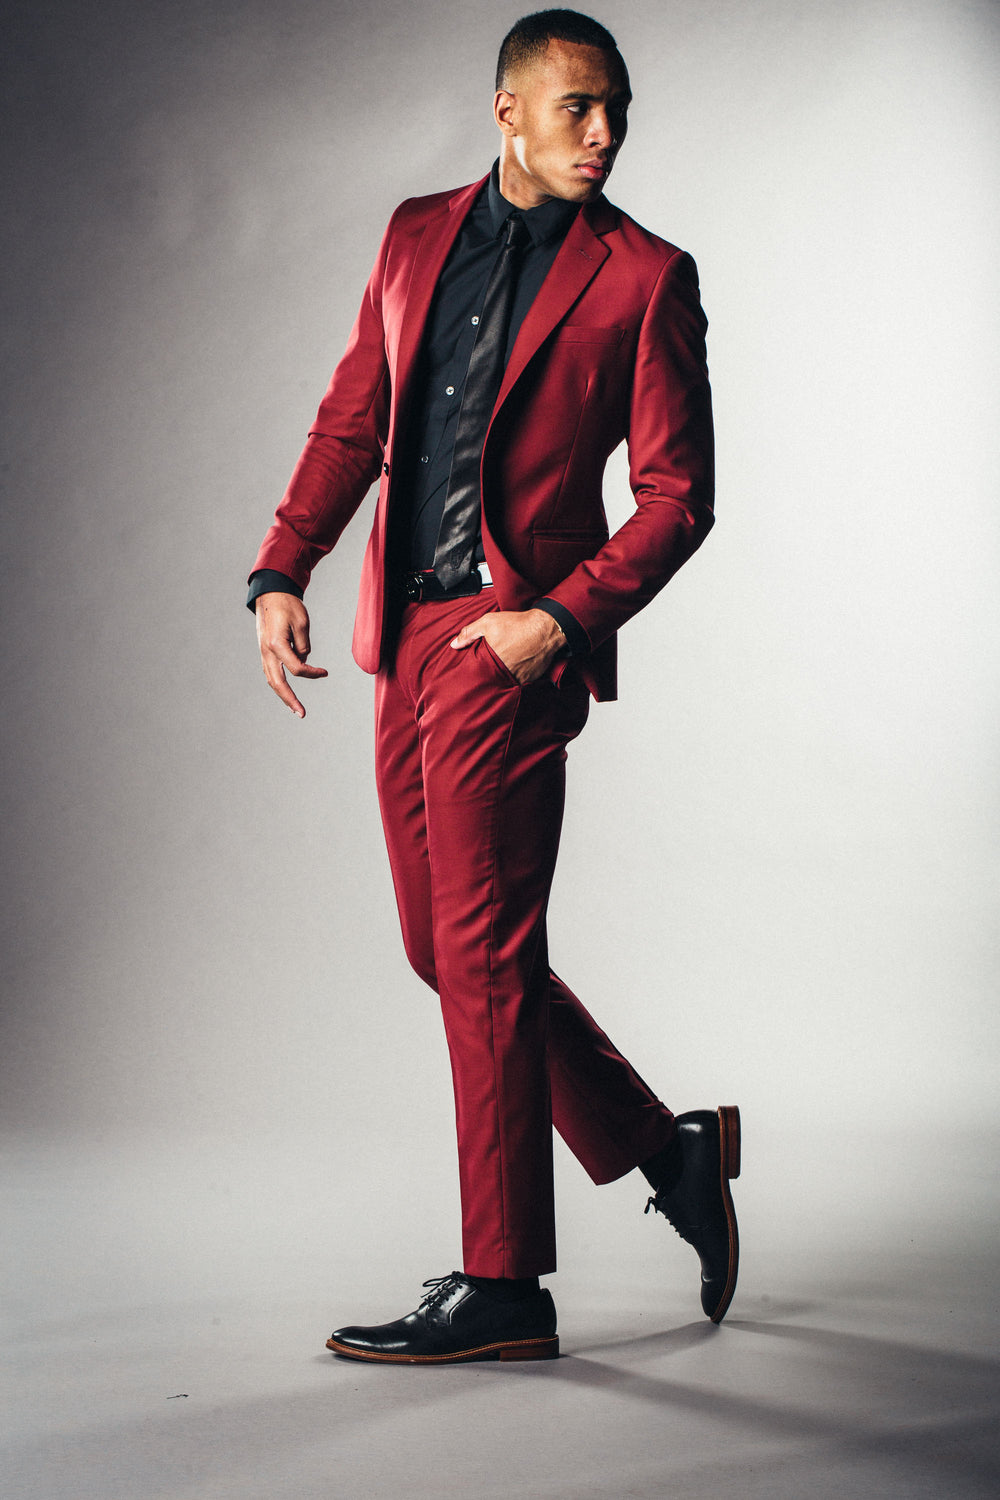 Handsome black athletic looking man in bold red custom made suit